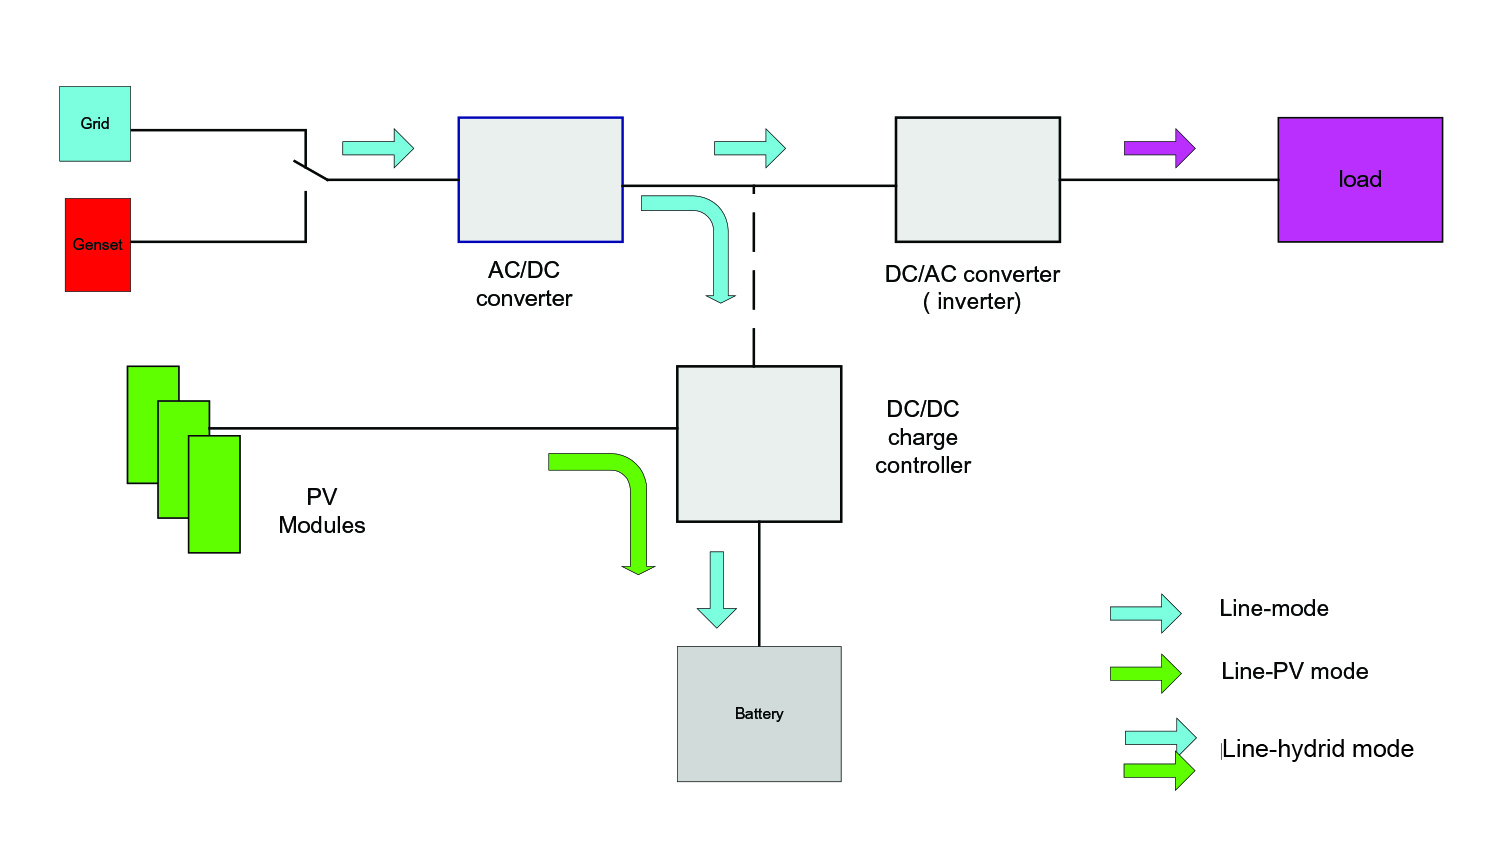 Ba 5417 Schematic Shows Example Components Of A General Gridconnected System Schematic Wiring